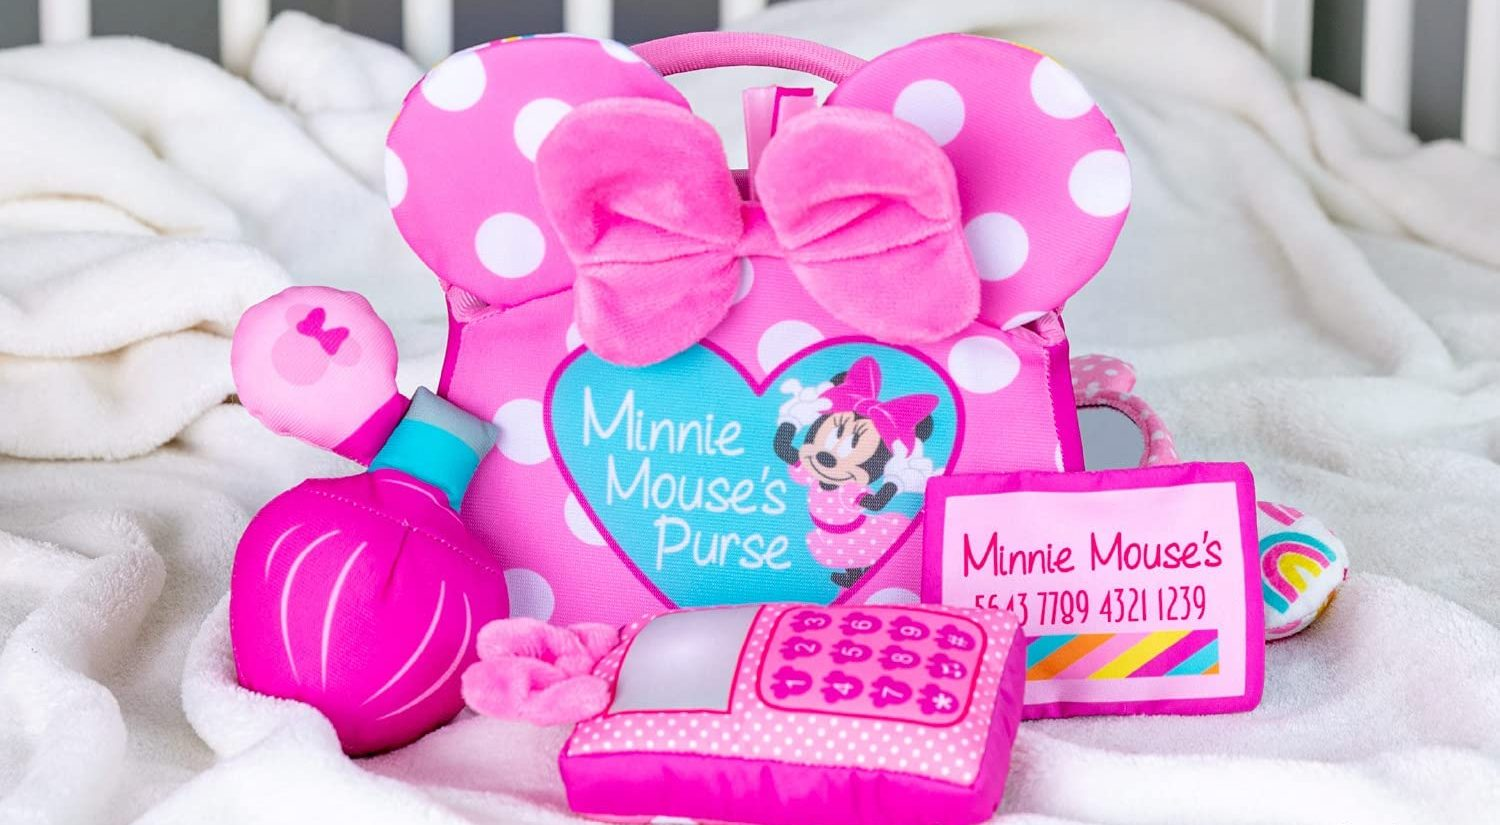 Minnie Mouse Play Purse